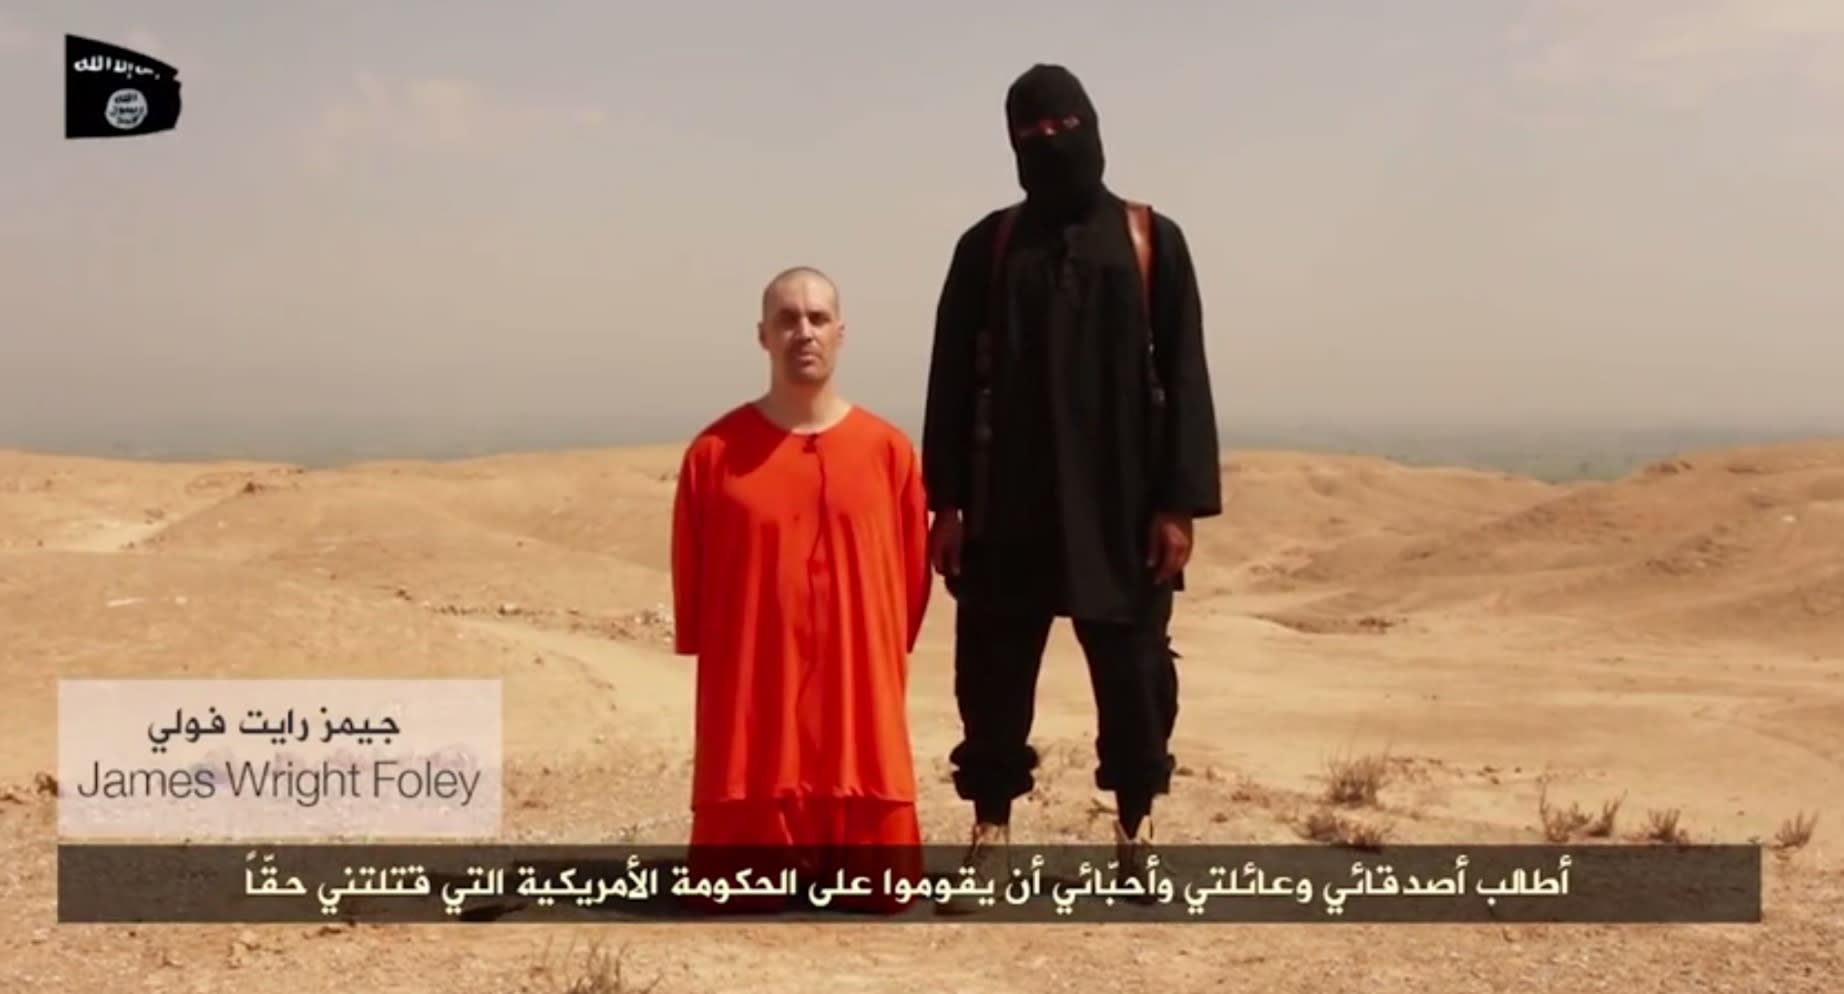 <p>A screen grab from a video posted to YouTube by ISIS that claims to show journalist James Foley, who was abducted in 2012 while covering the Syria civil war, being beheaded.</p>  <p>(YouTube)</p>